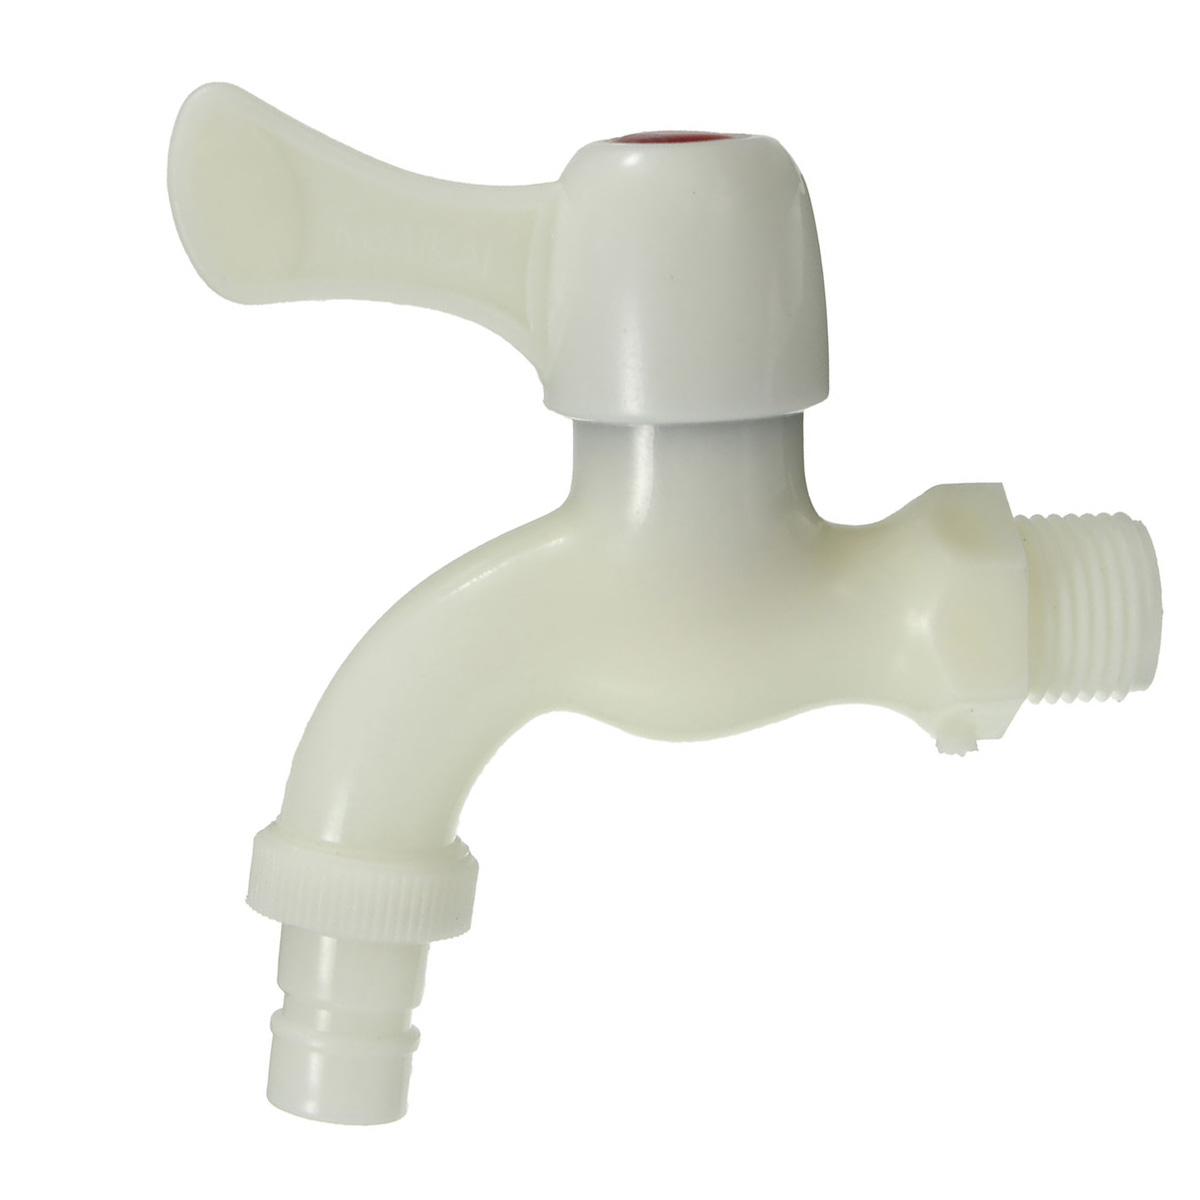 single item machine bathroom faucet bibcock with sets accessories stopcock mini garden plastic faucets watering washing in tap cold from